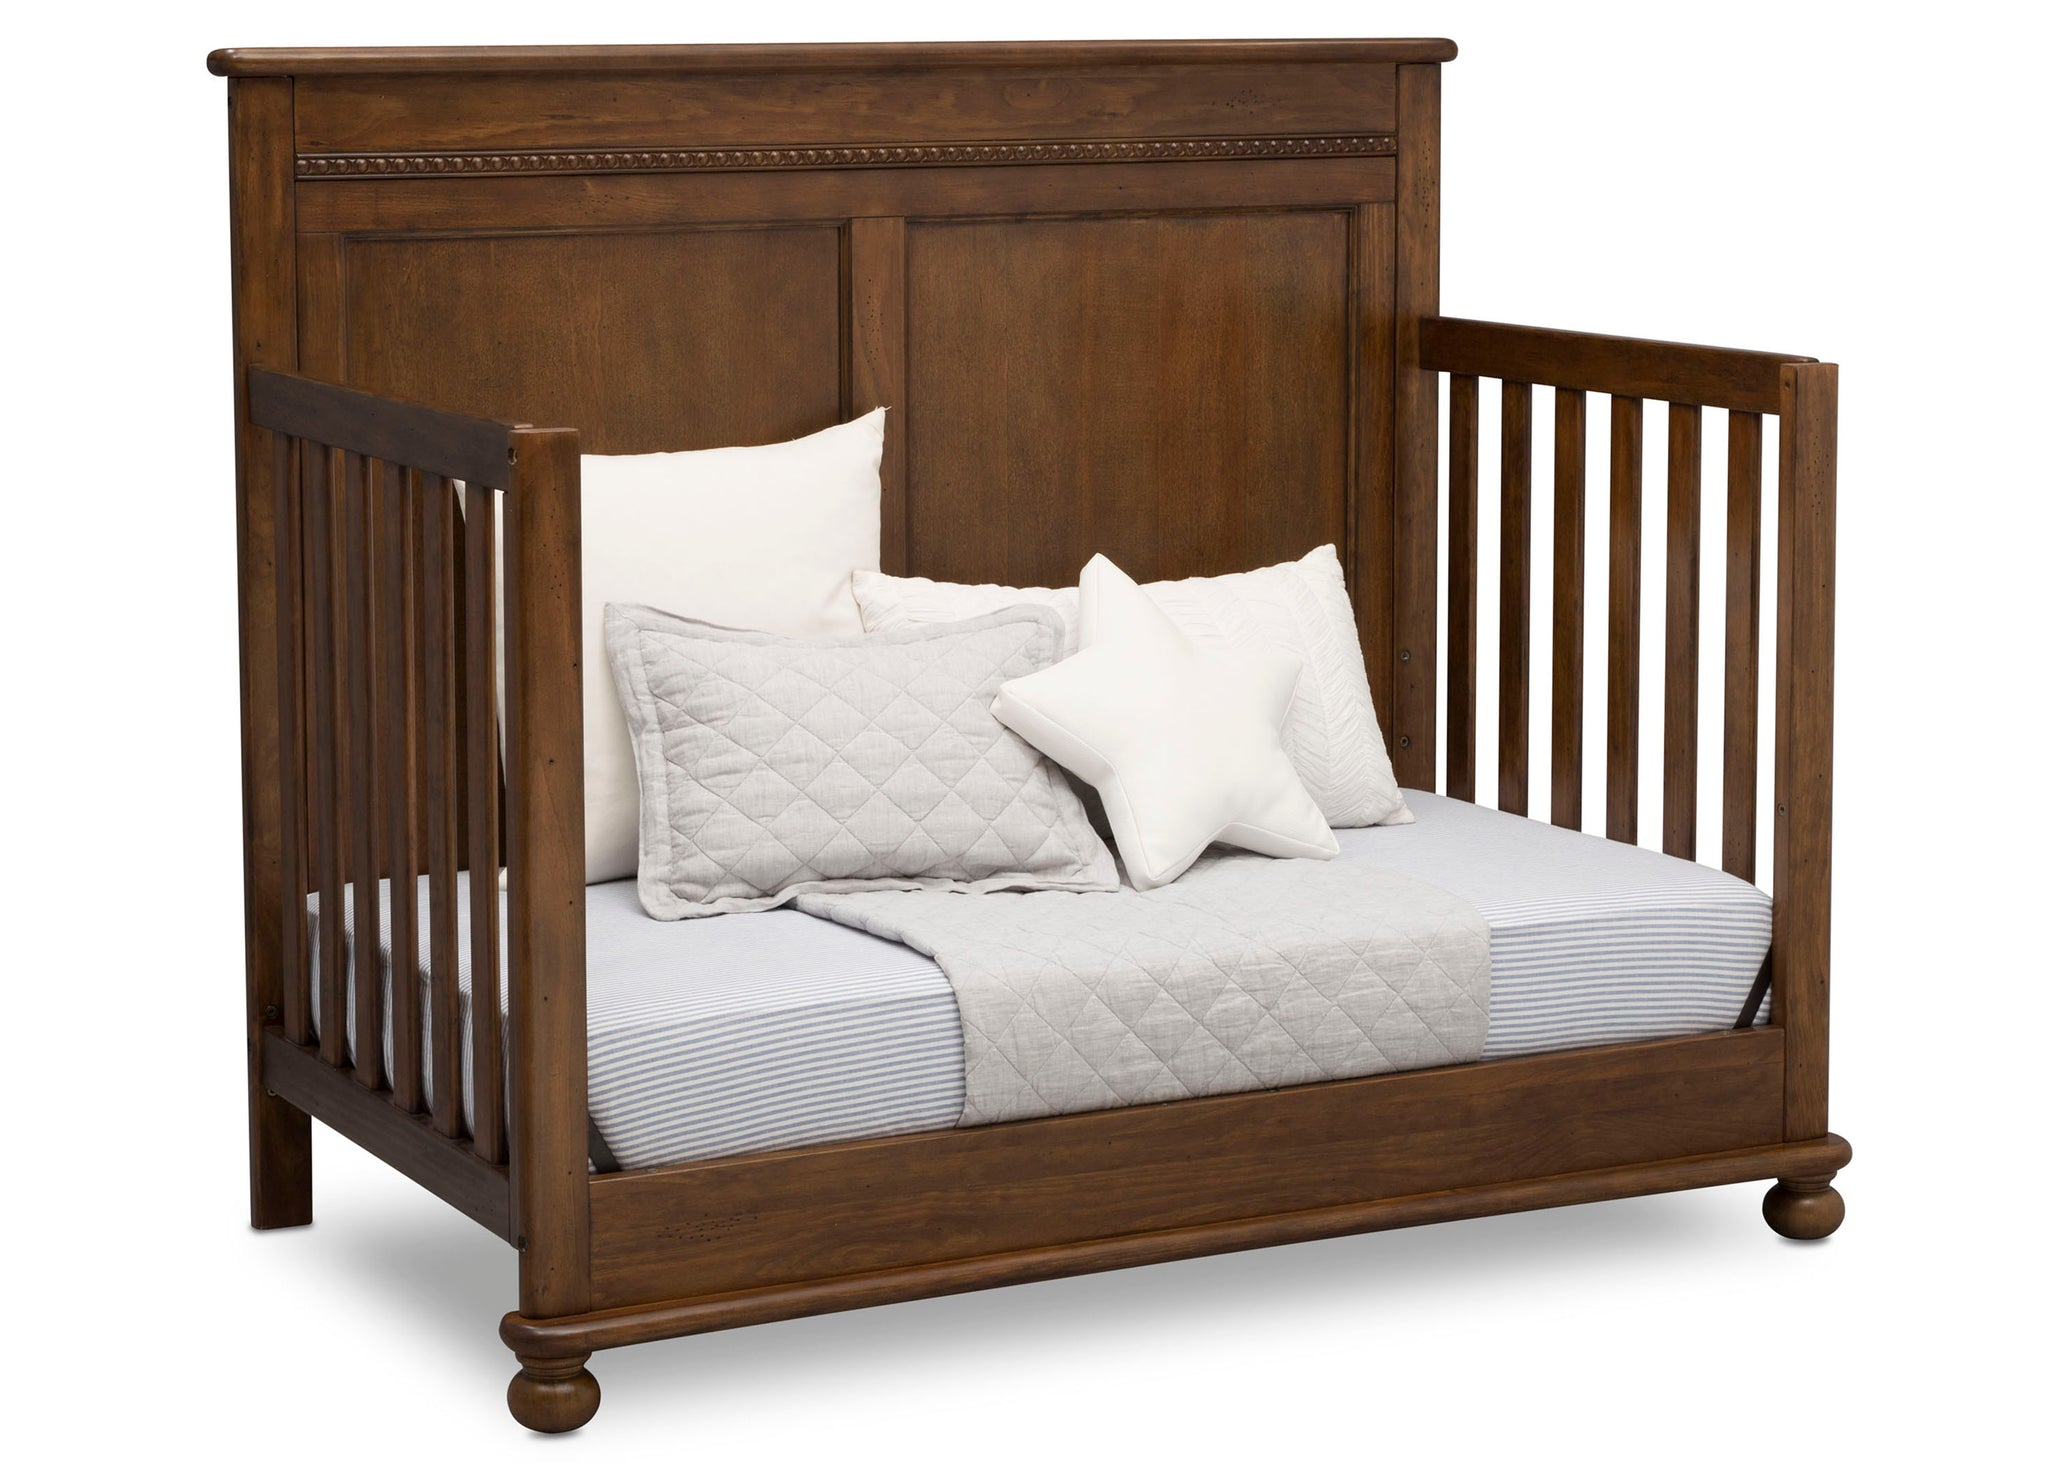 Delta Children Antique Chestnut (2100) Fontana 4-in-1 Convertible Crib (W337350) Day Bed Conversion, c5c